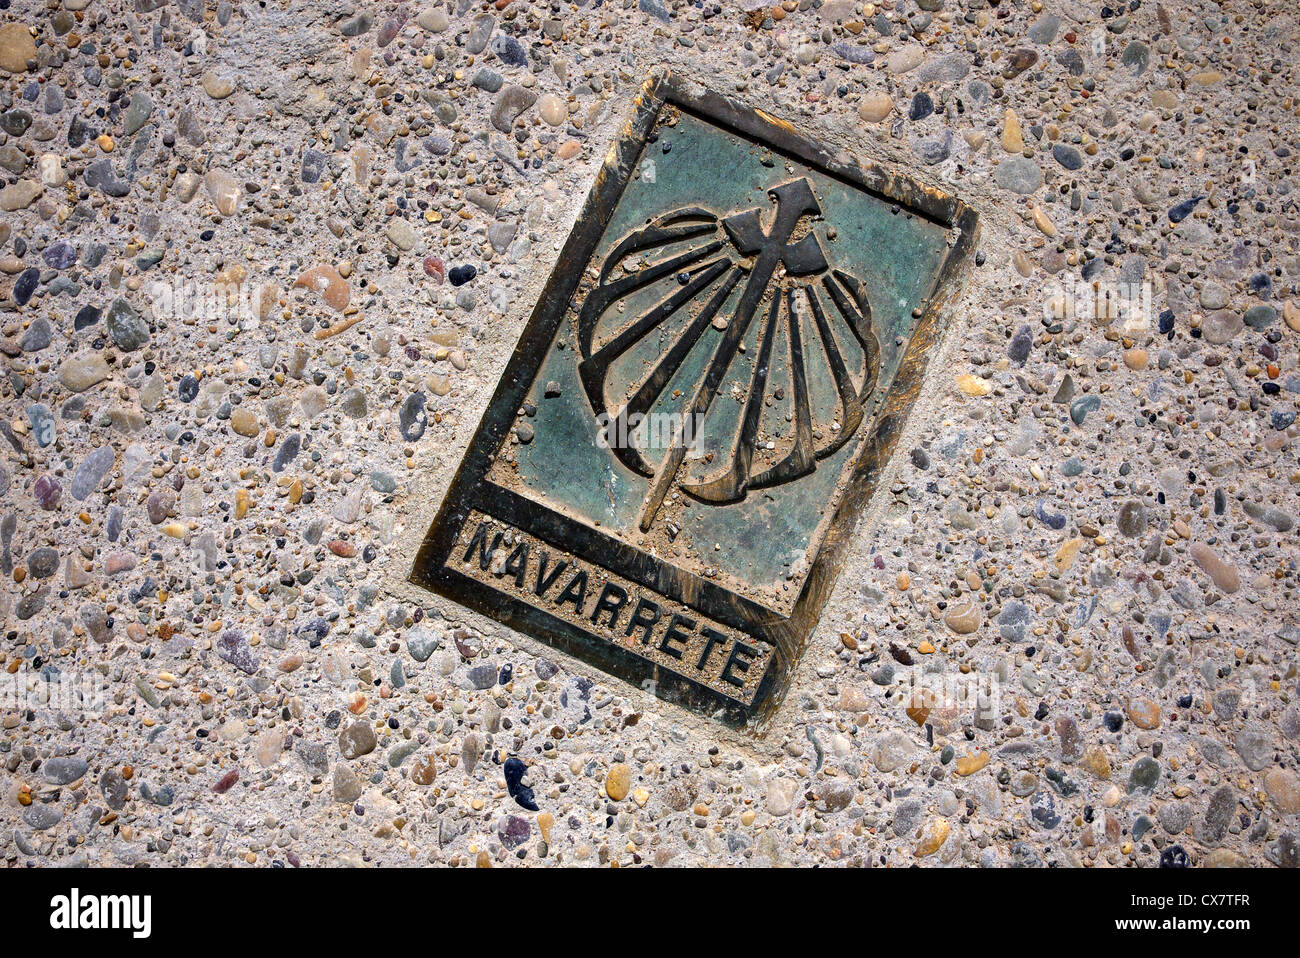 A way marker on the road to Santiago at Navarrete, Spain. - Stock Image